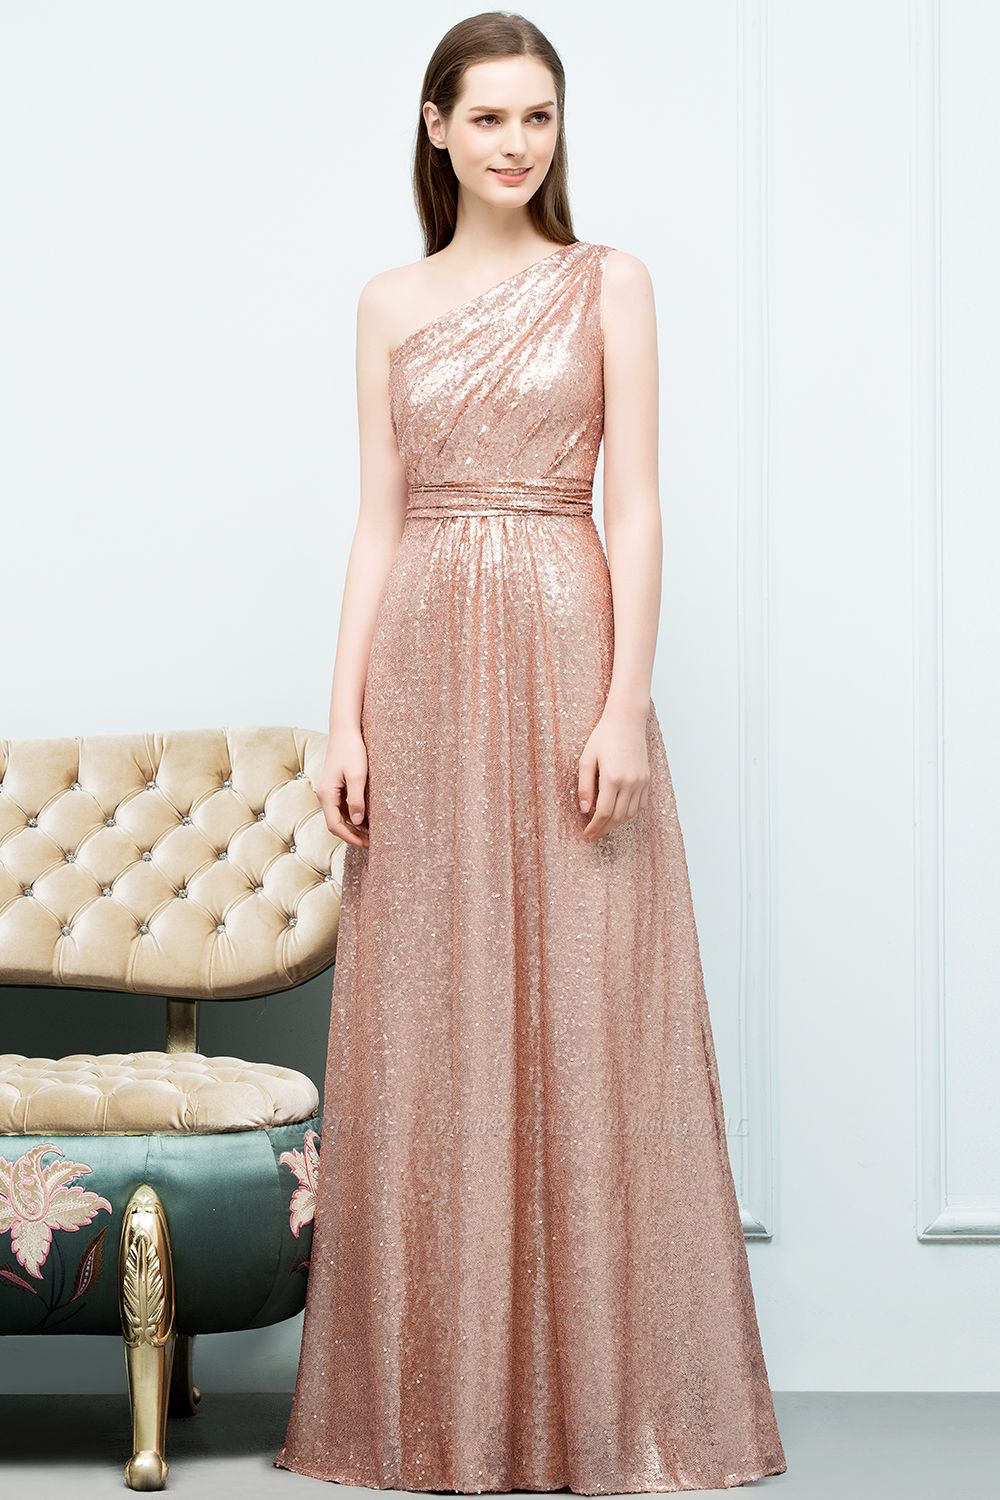 BMbridal Gorgeous Sequined One-shoulder Bridesmaid Dress with Ruffles